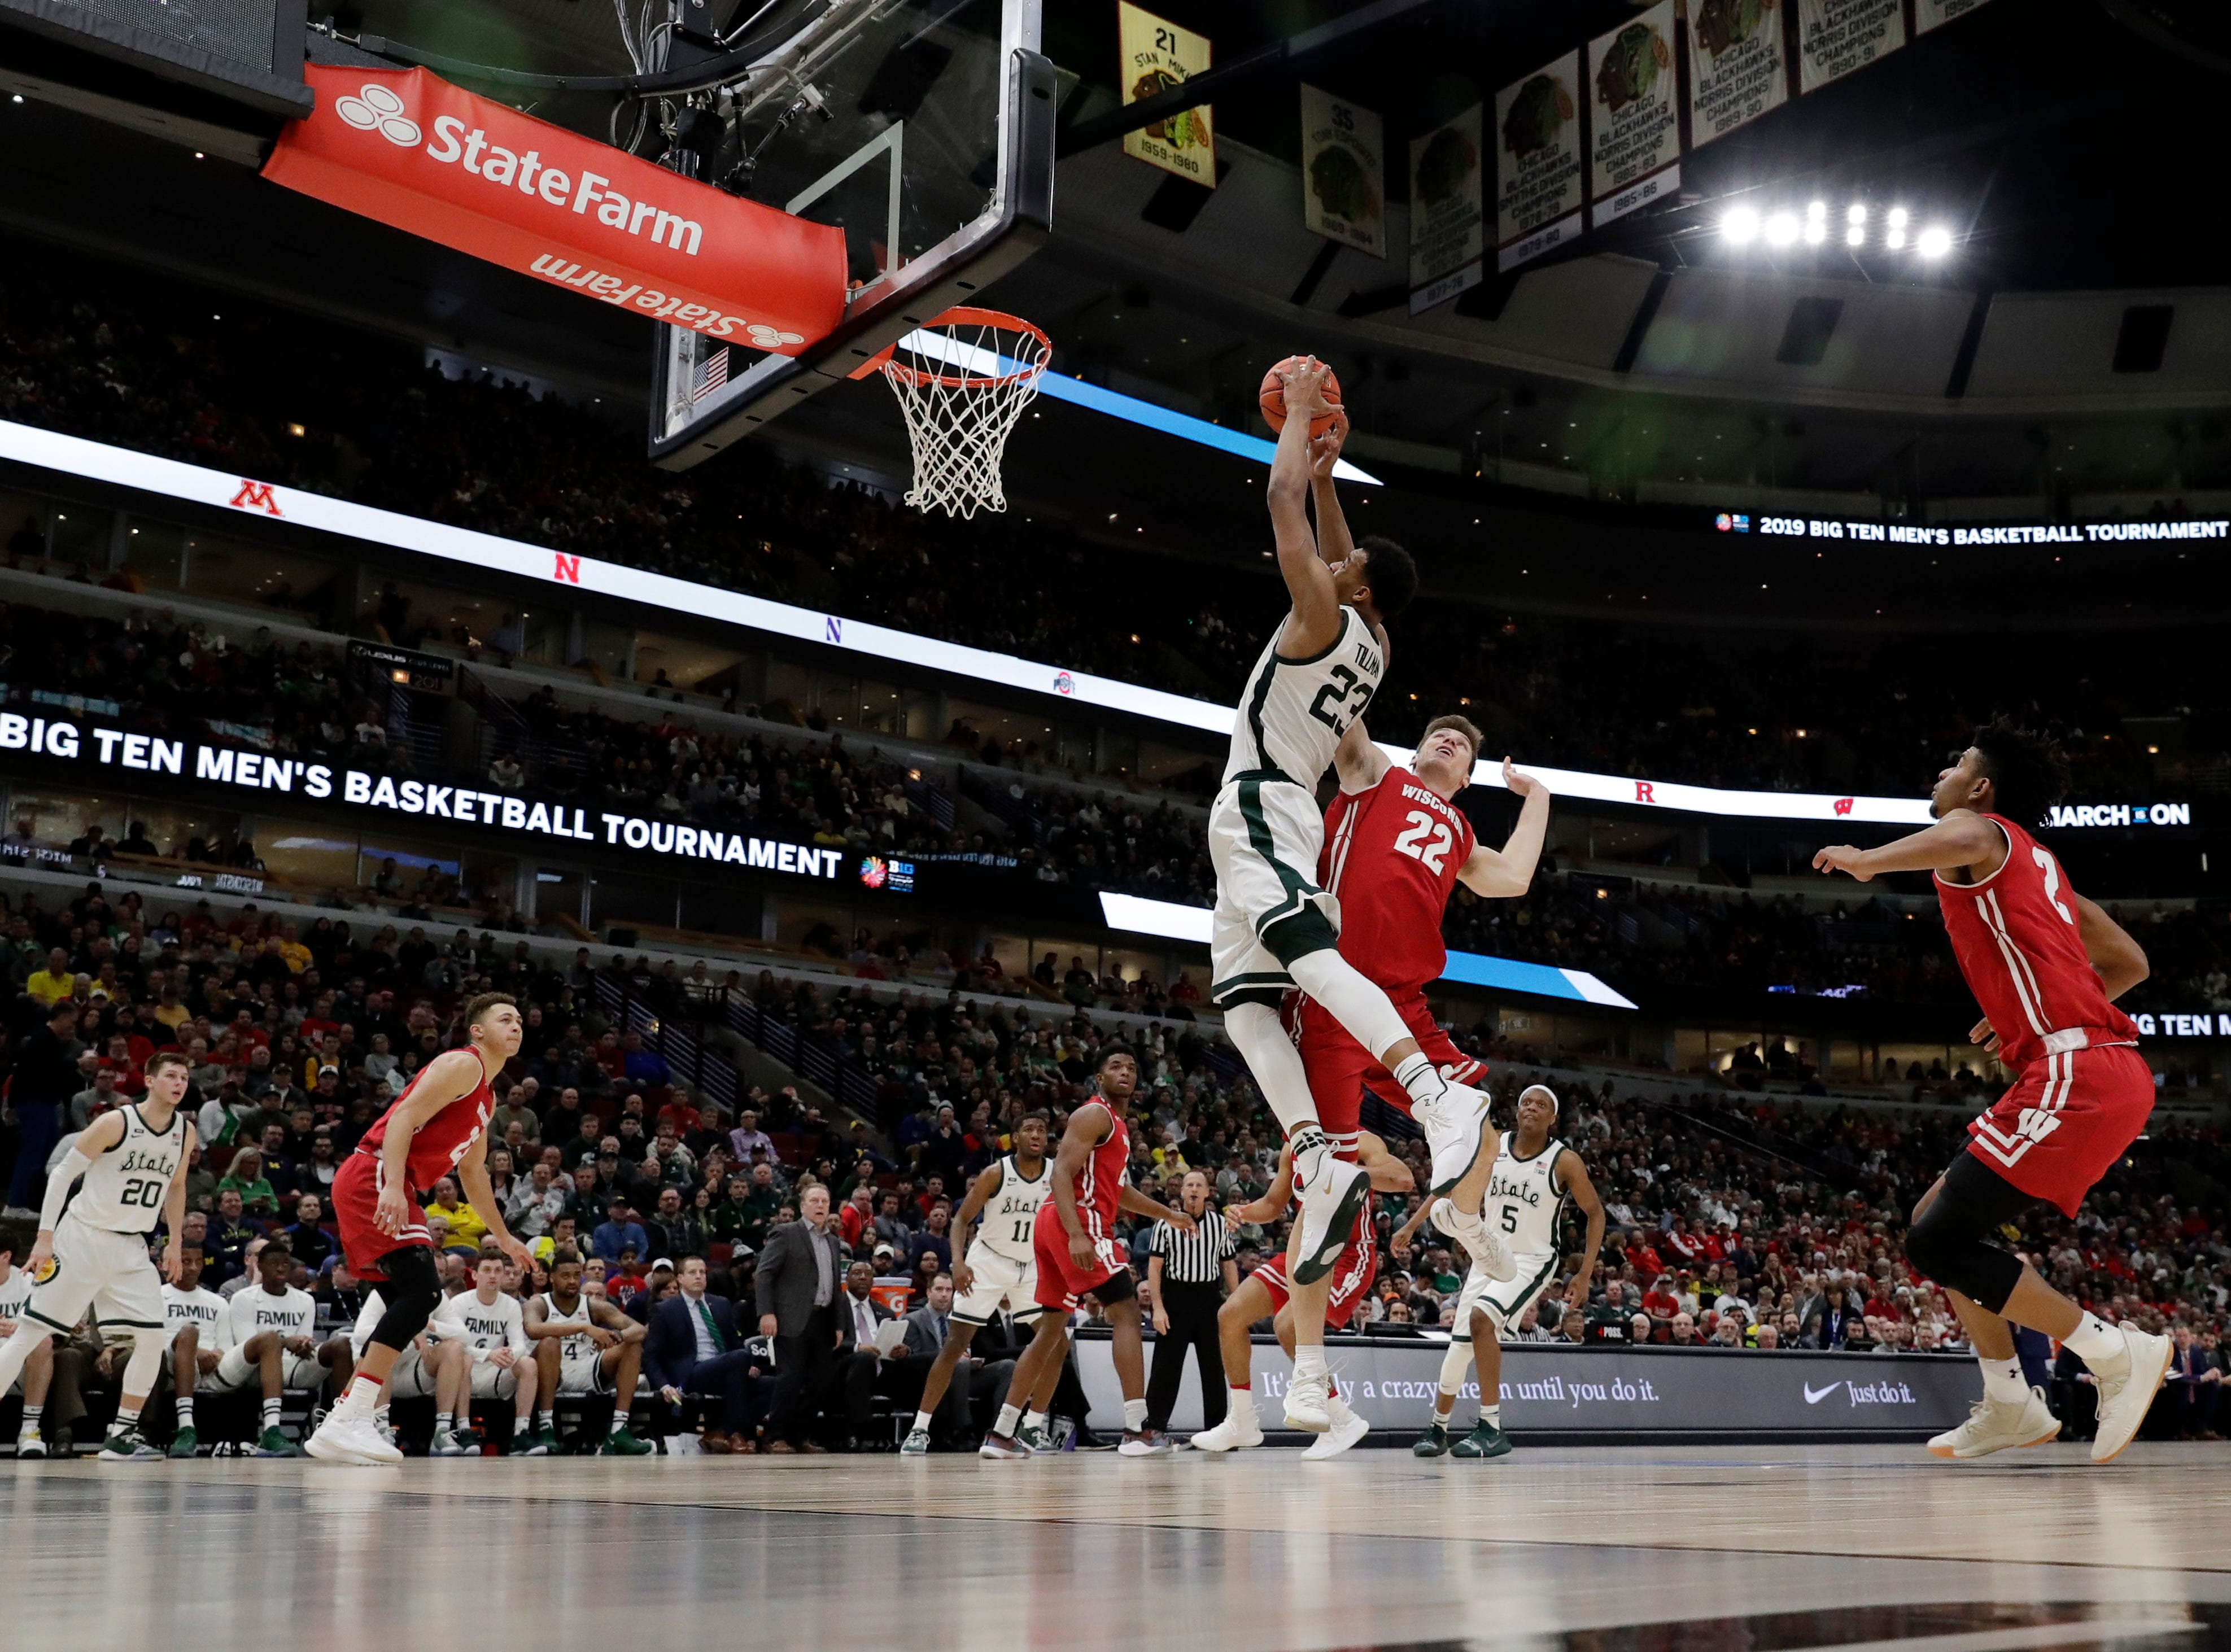 Michigan State's Xavier Tillman (23) grabs a rebound over Wisconsin's Ethan Happ (22) during the second half of an NCAA college basketball game in the semifinals of the Big Ten Conference tournament, Saturday, March 16, 2019, in Chicago.